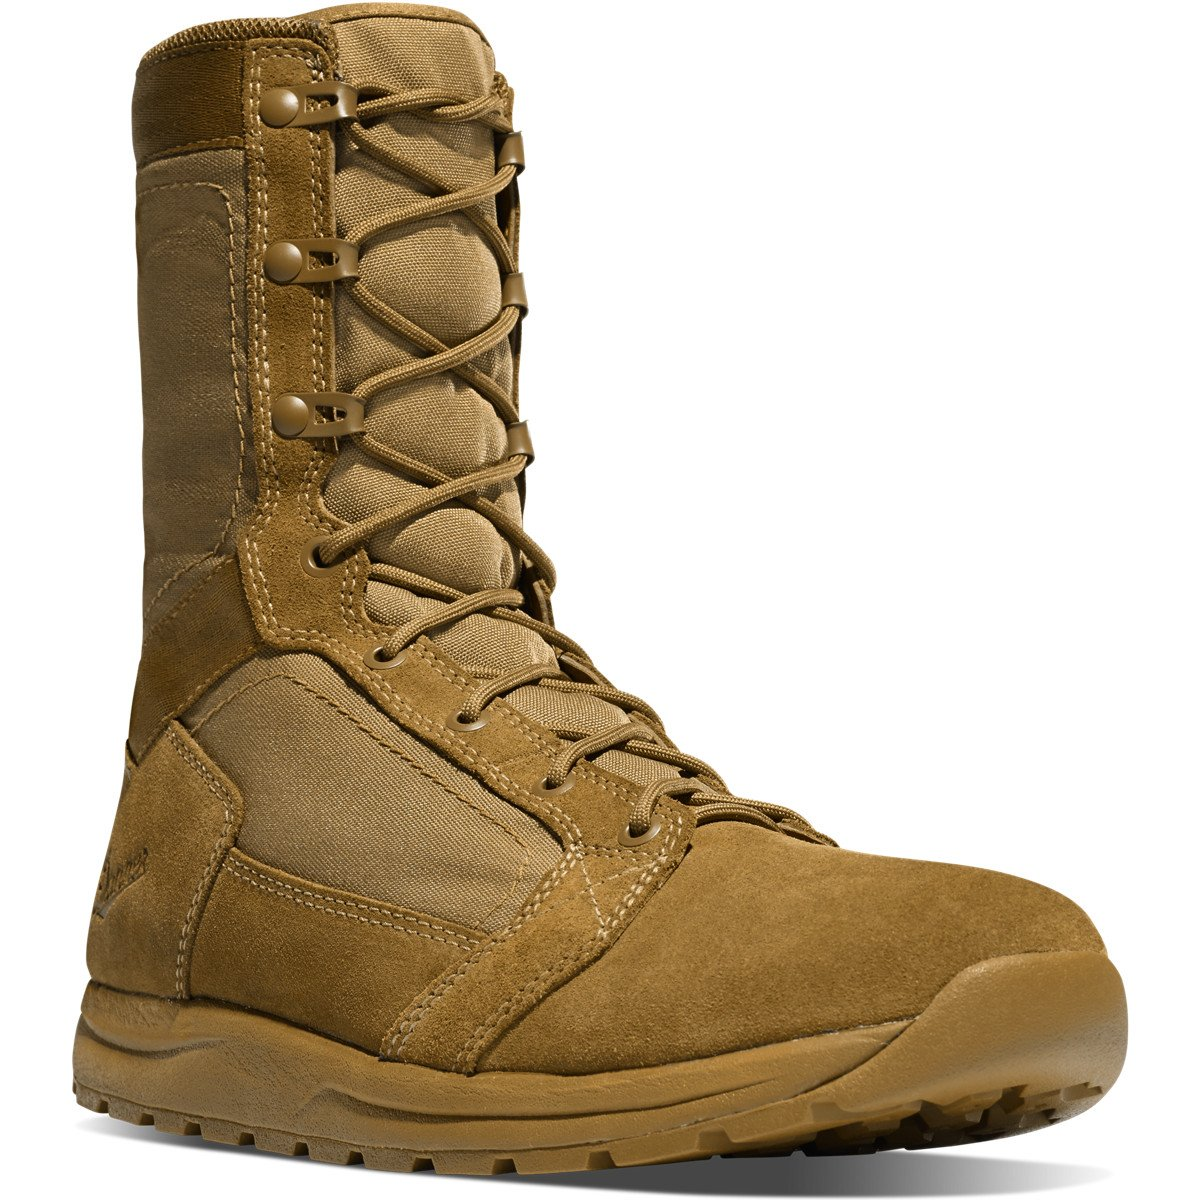 eb287deb65e Danner Men's Tachyon 8 Inch Coyote Military and Tactical Boot